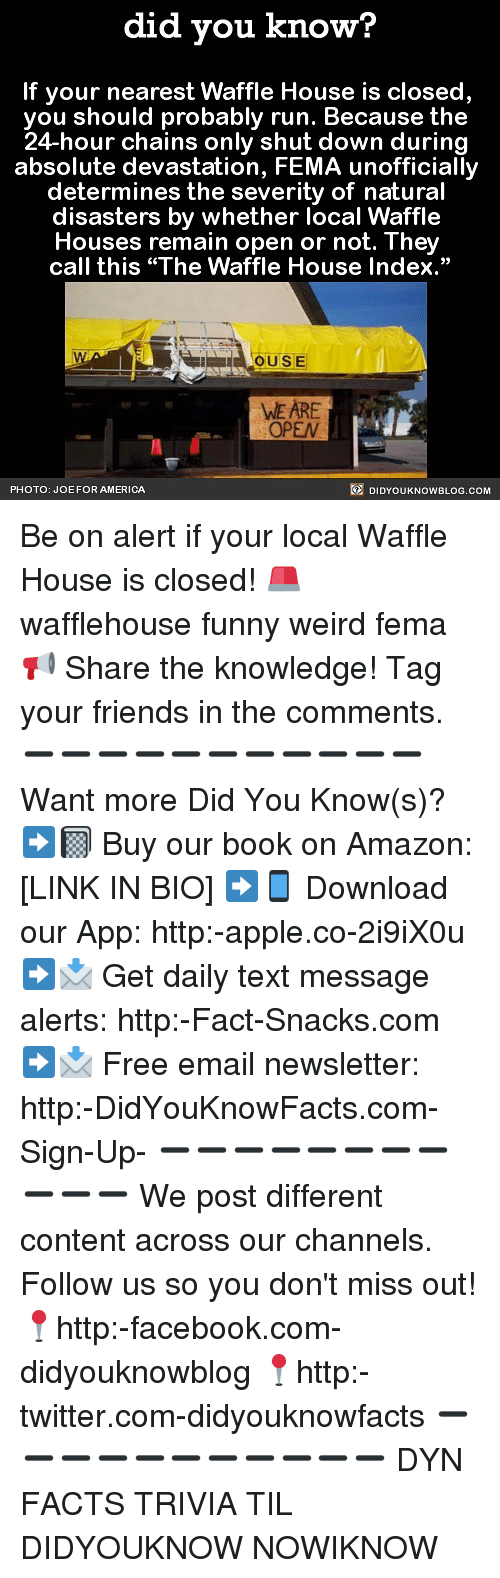 Did You Know? If Your Nearest Waffle House Is Closed You Should ...